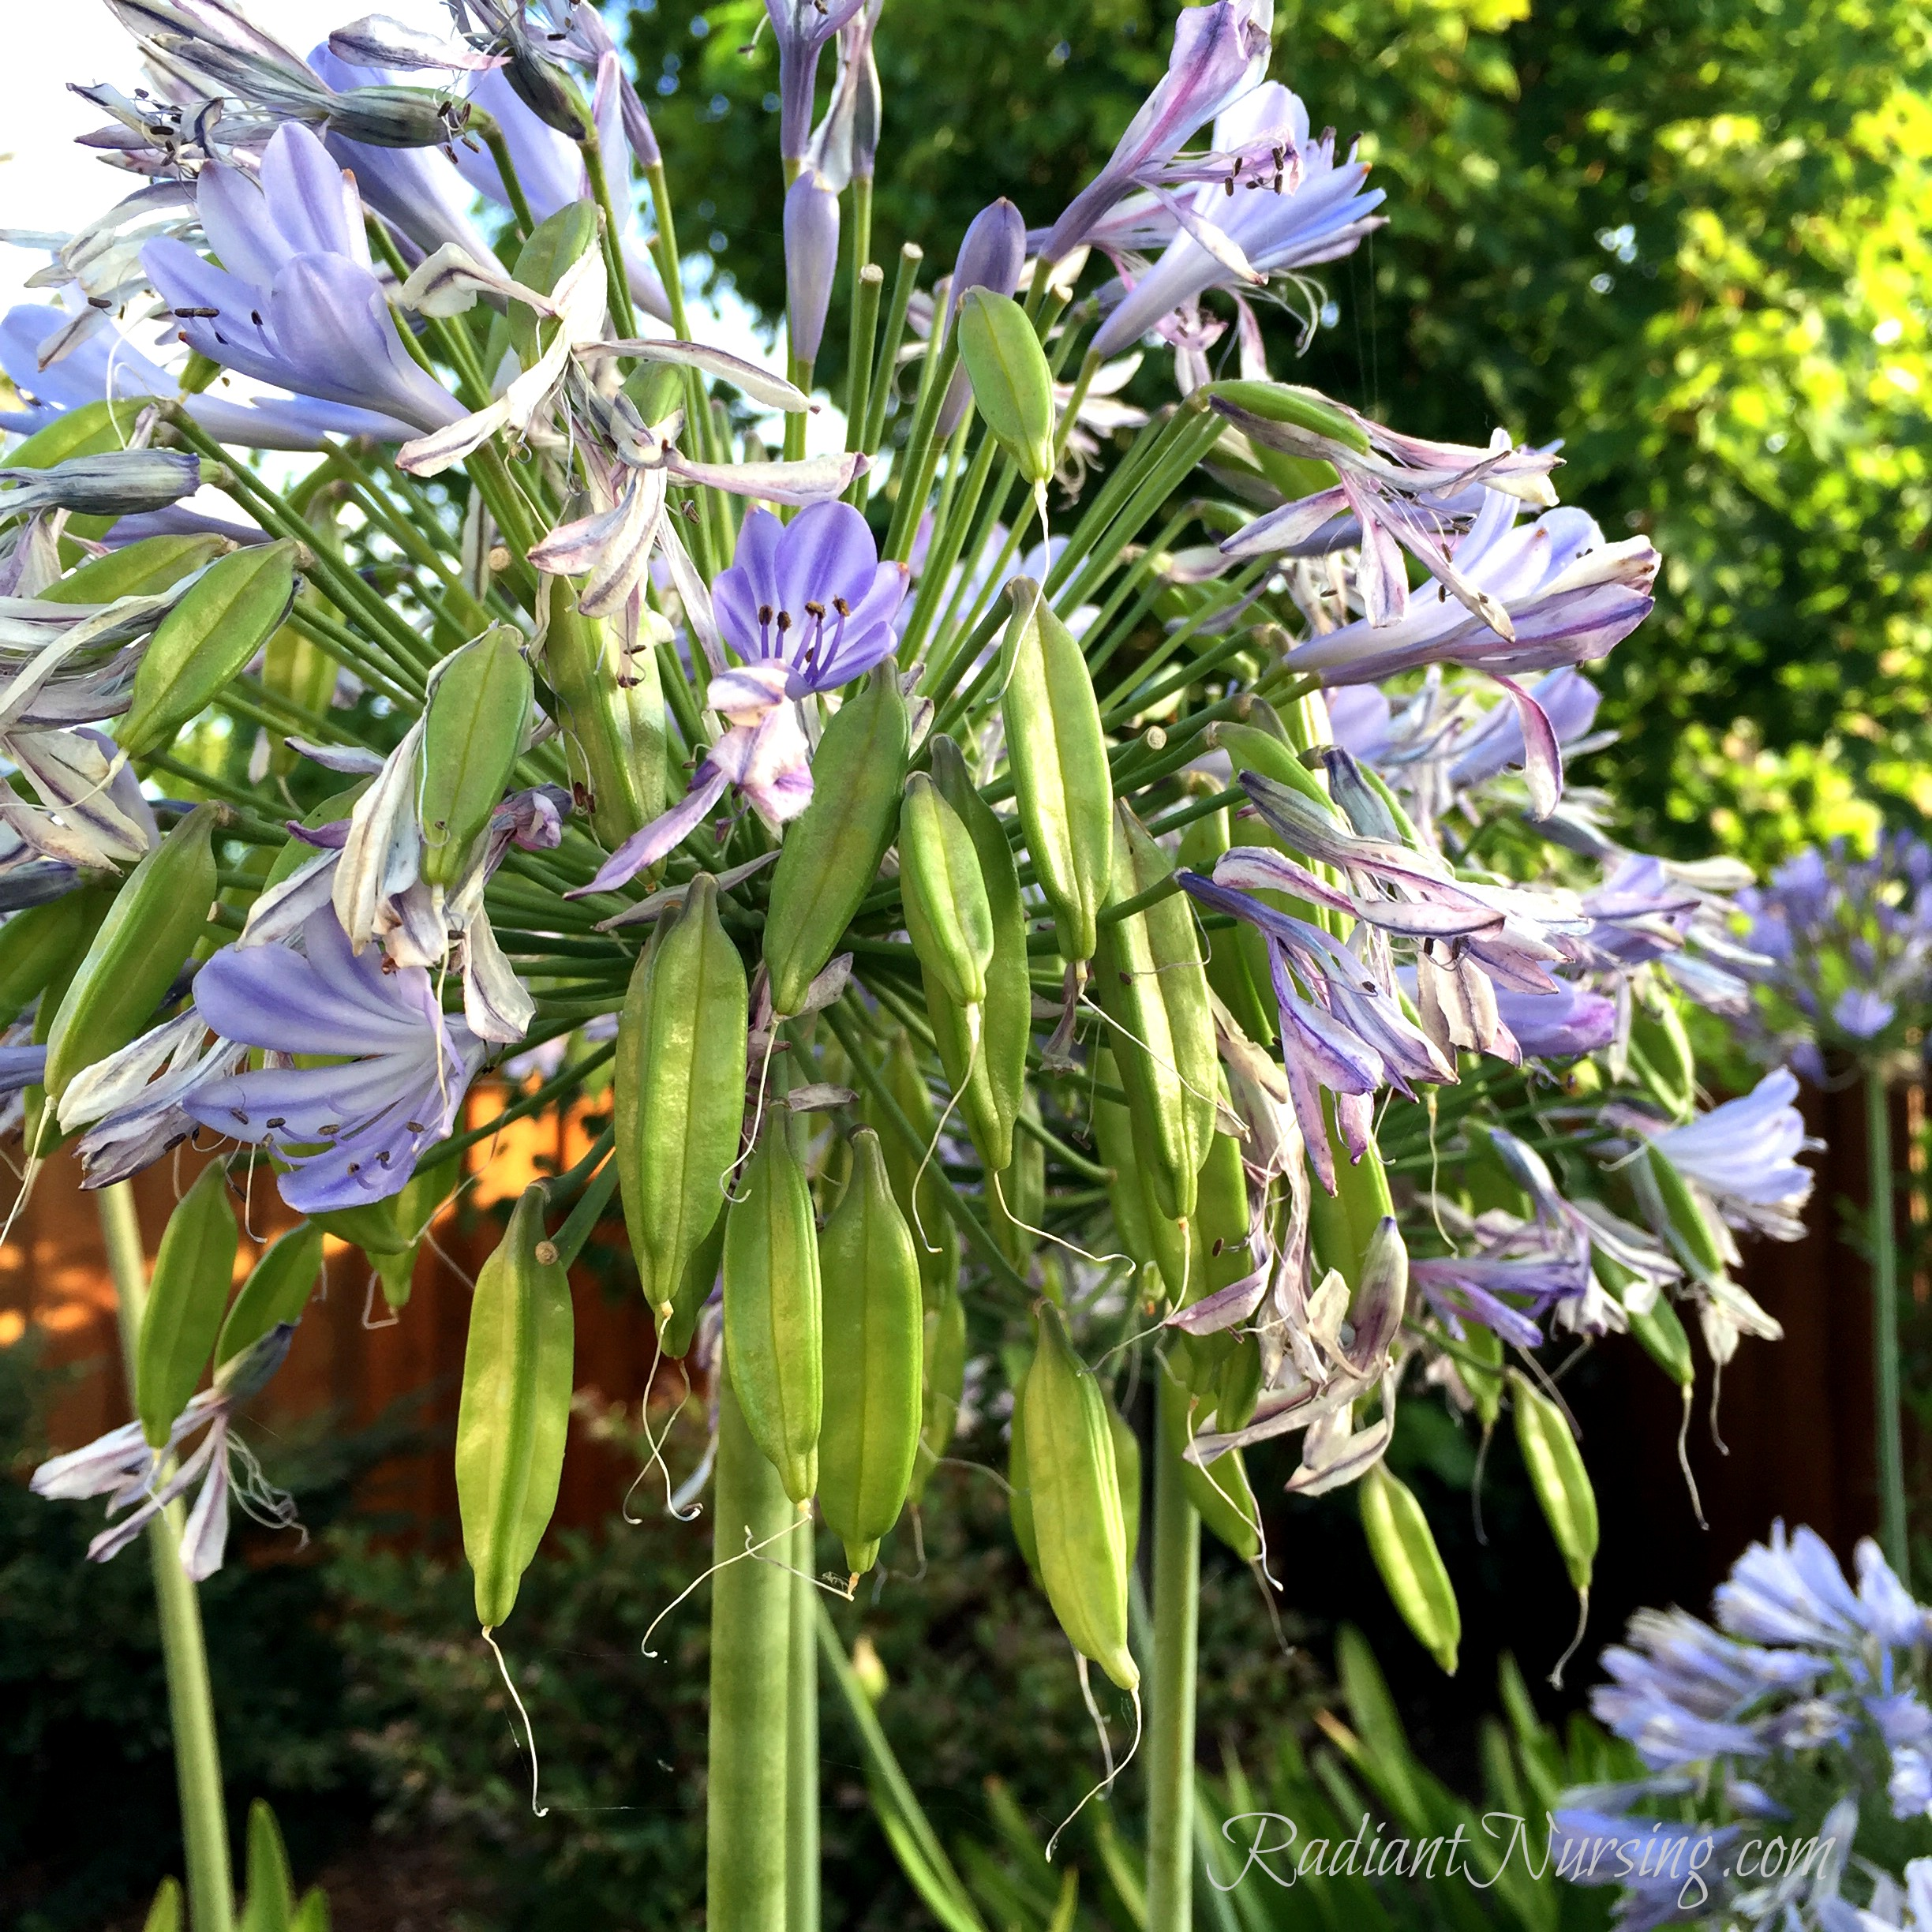 Seed pods on Agapanthus. After the blooms.